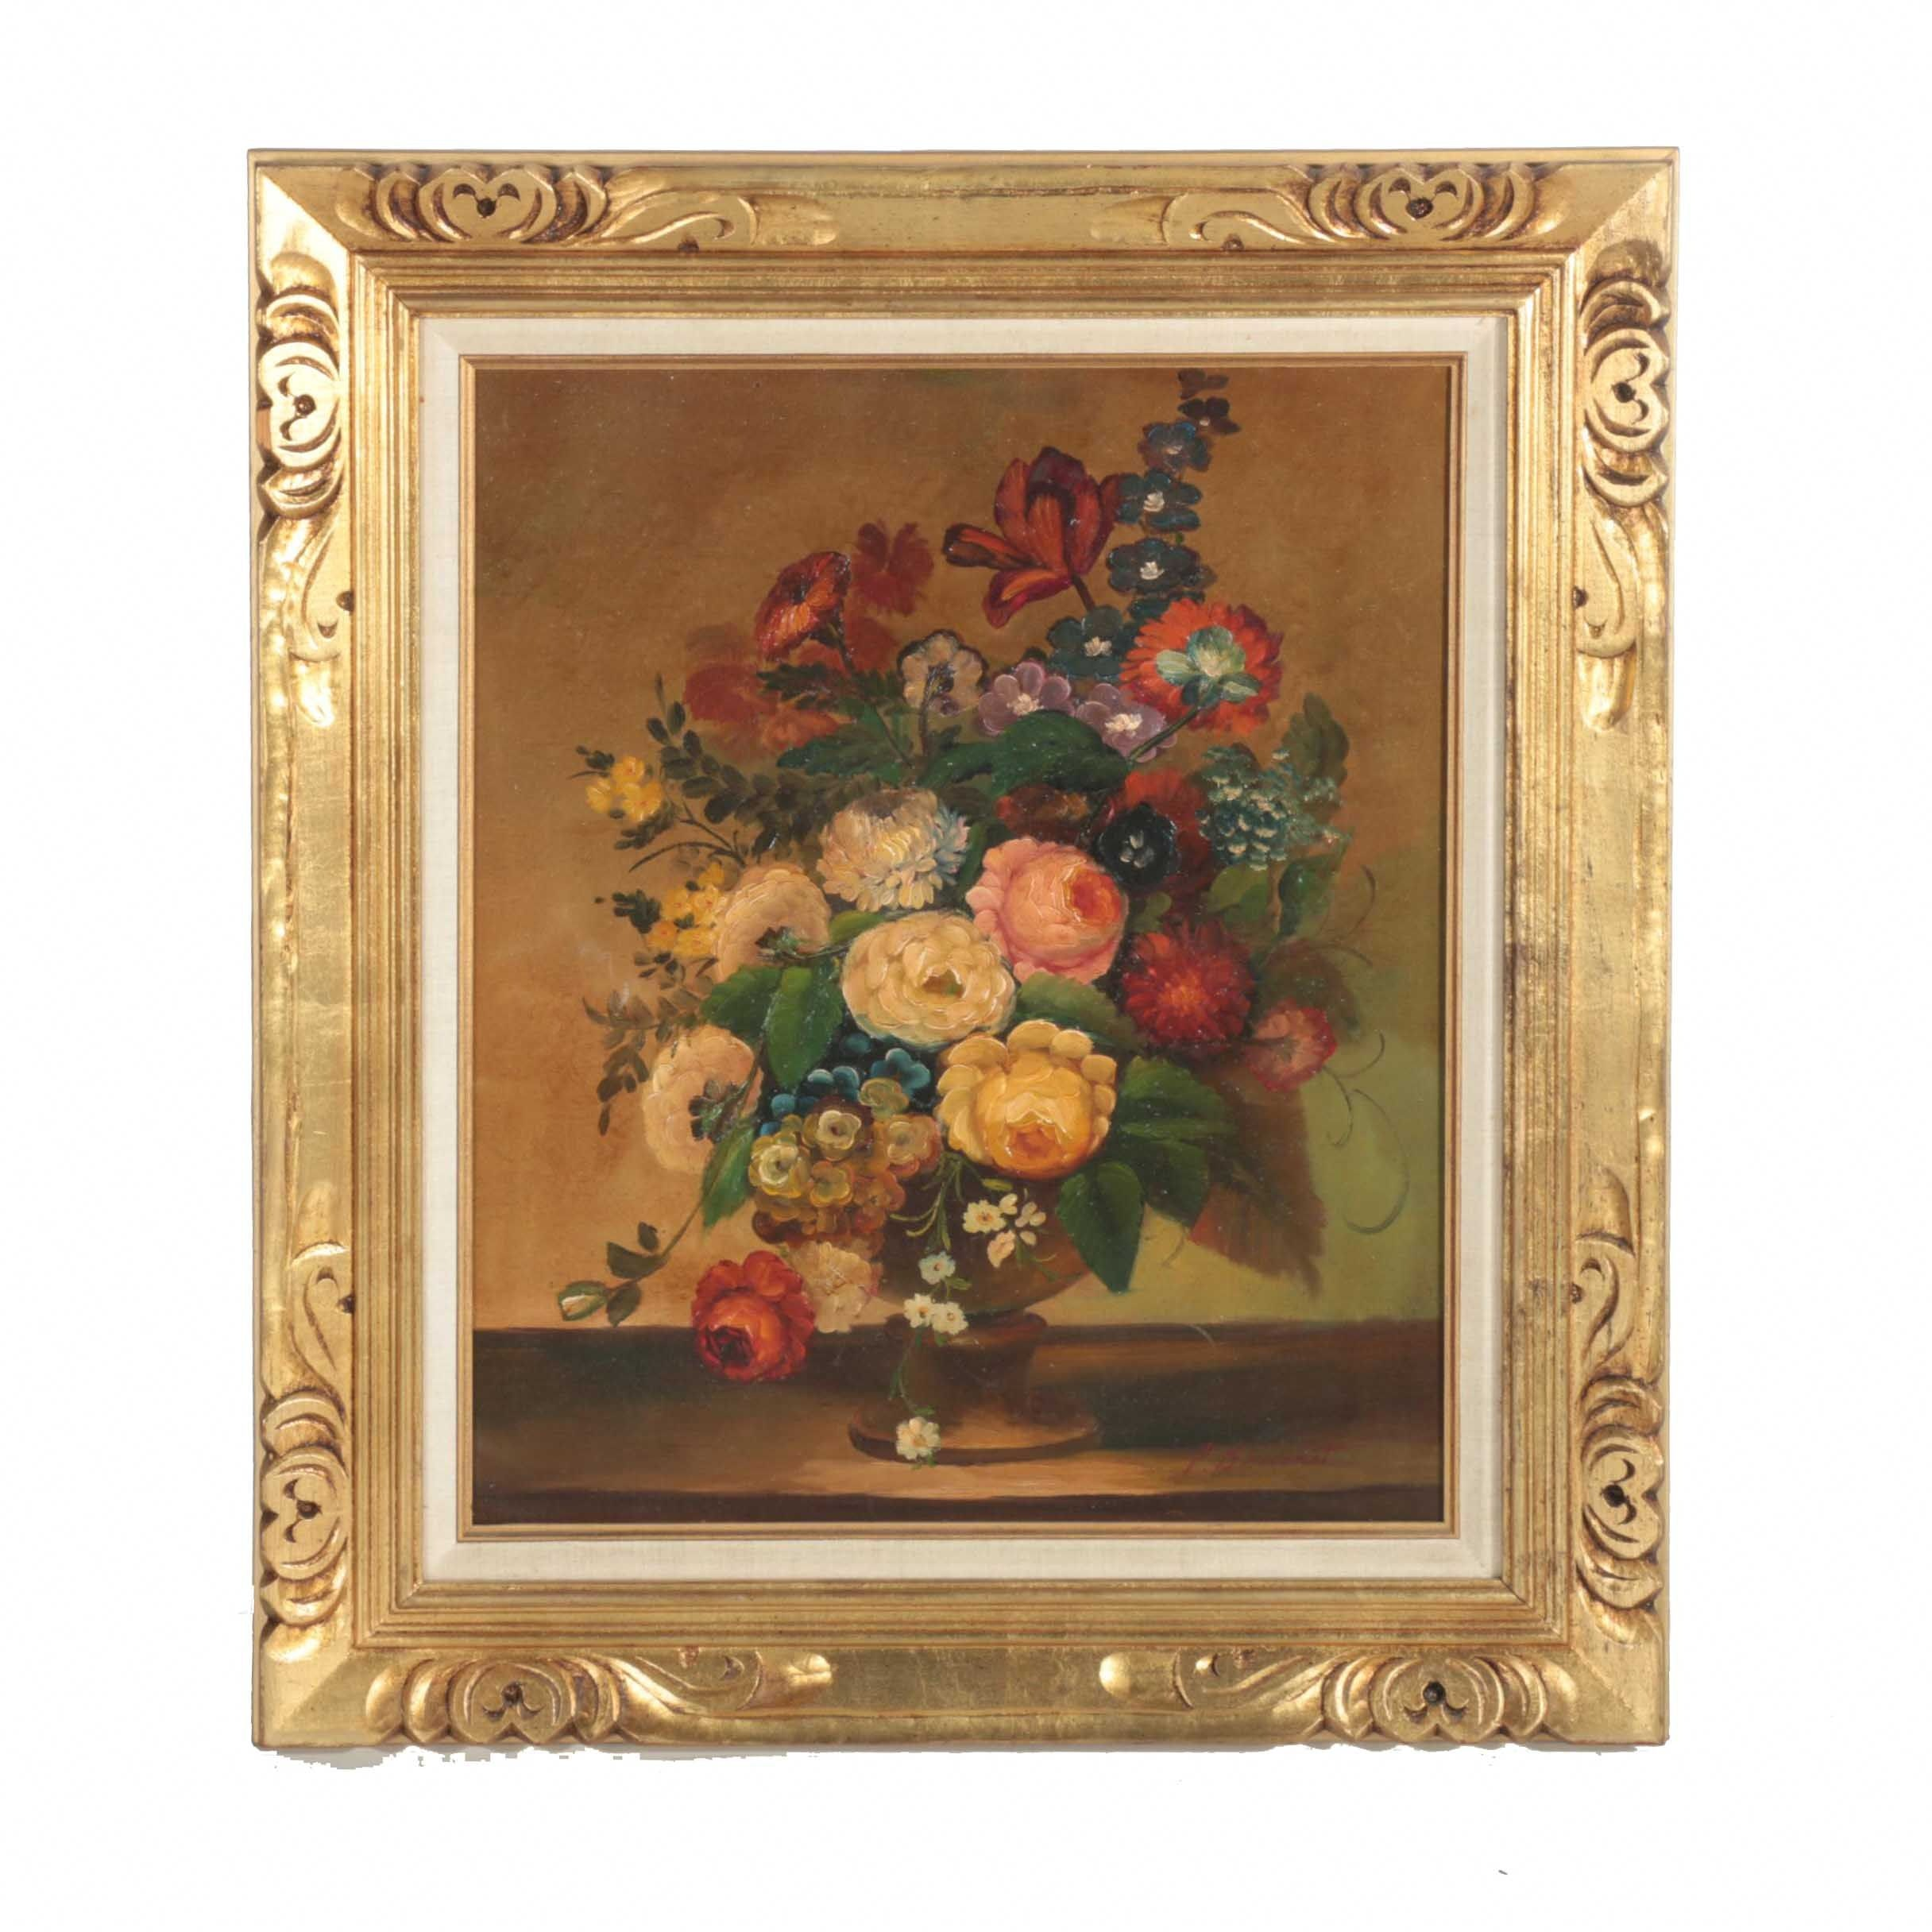 P. Bouchet Still Life Oil on Canvas of Vase Overflowing With Flowers